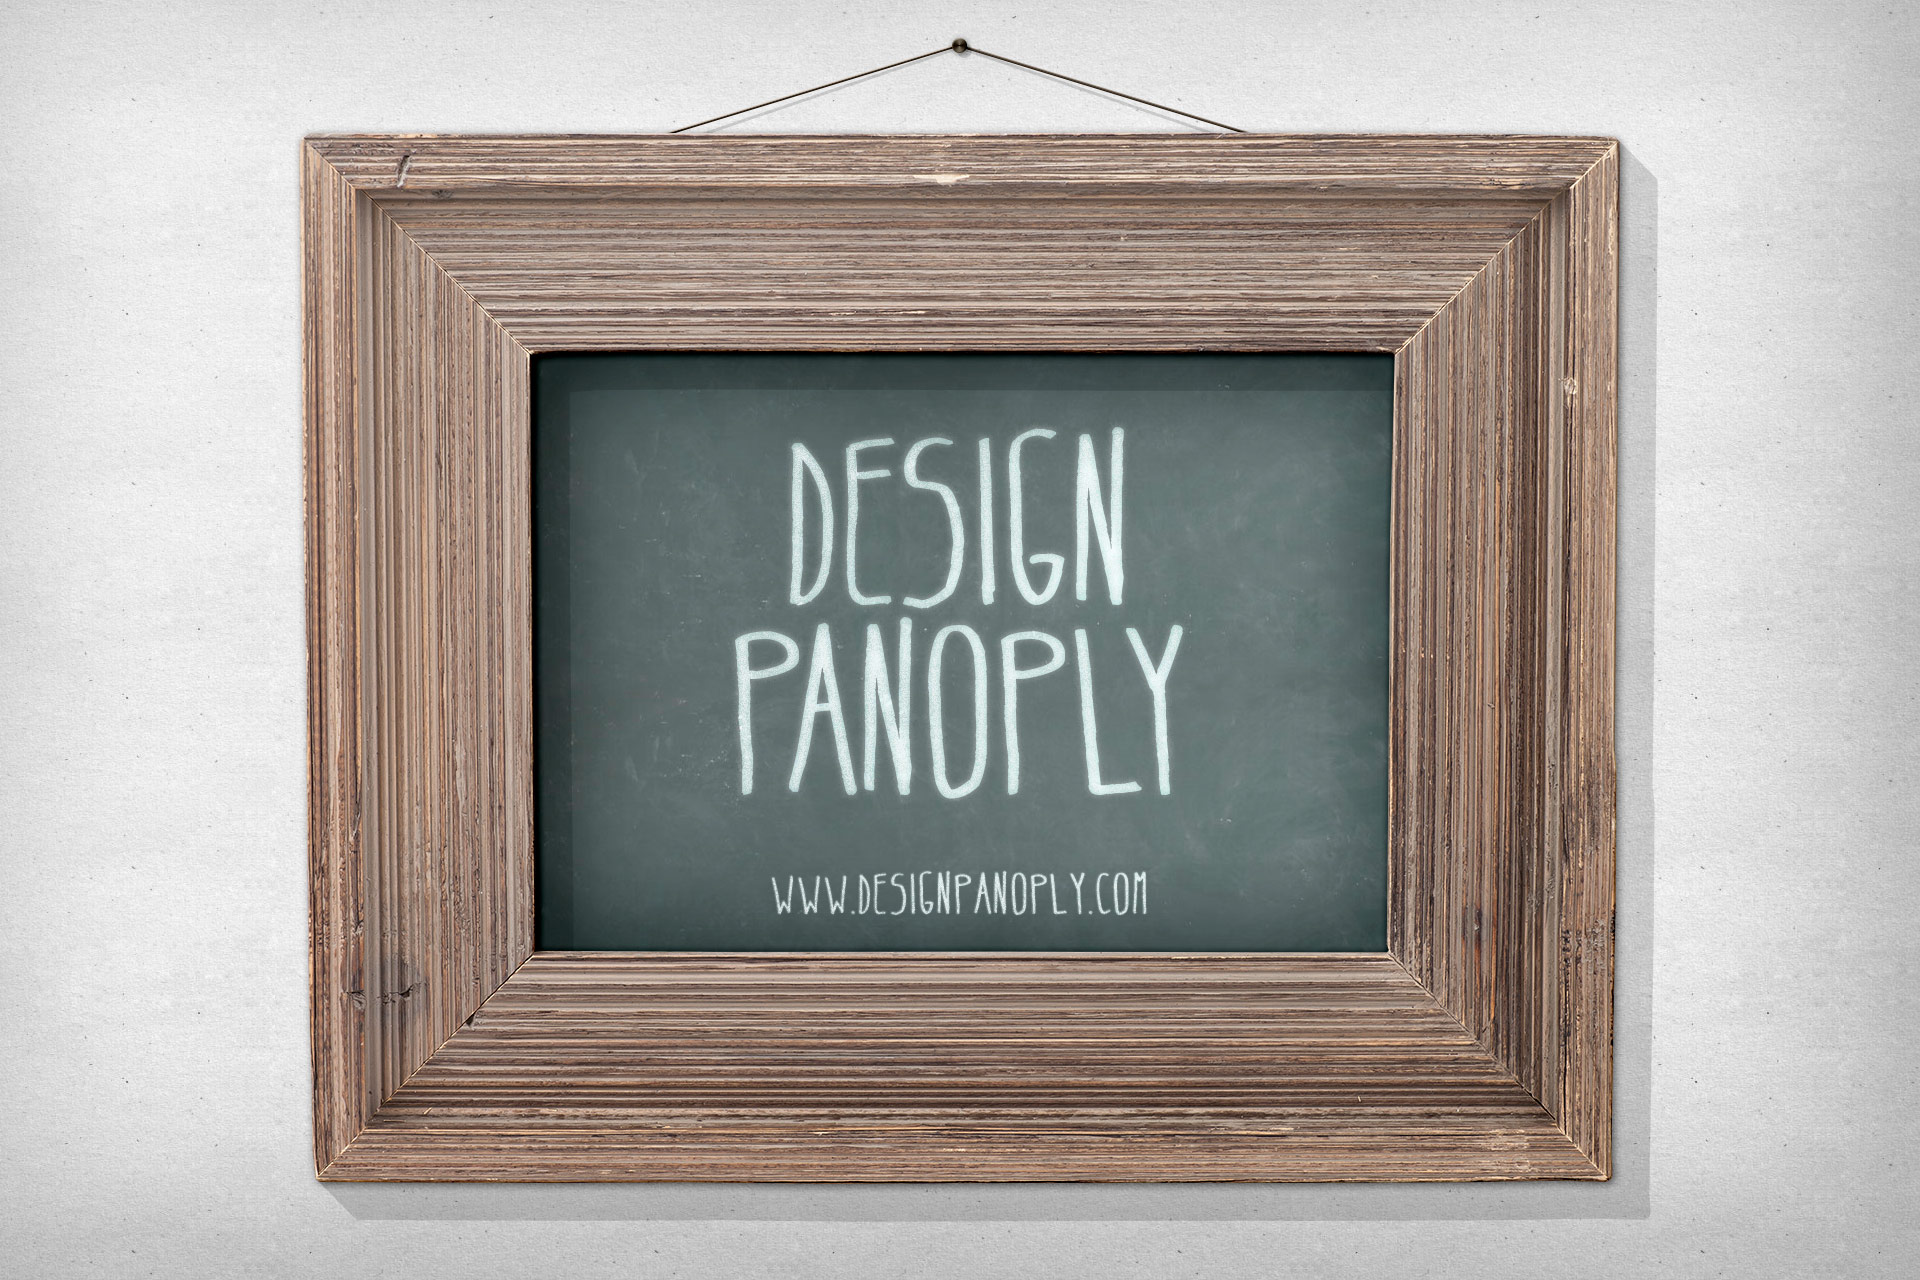 Realistic Vintage Poster Print in a Picture Frame | Design Panoply